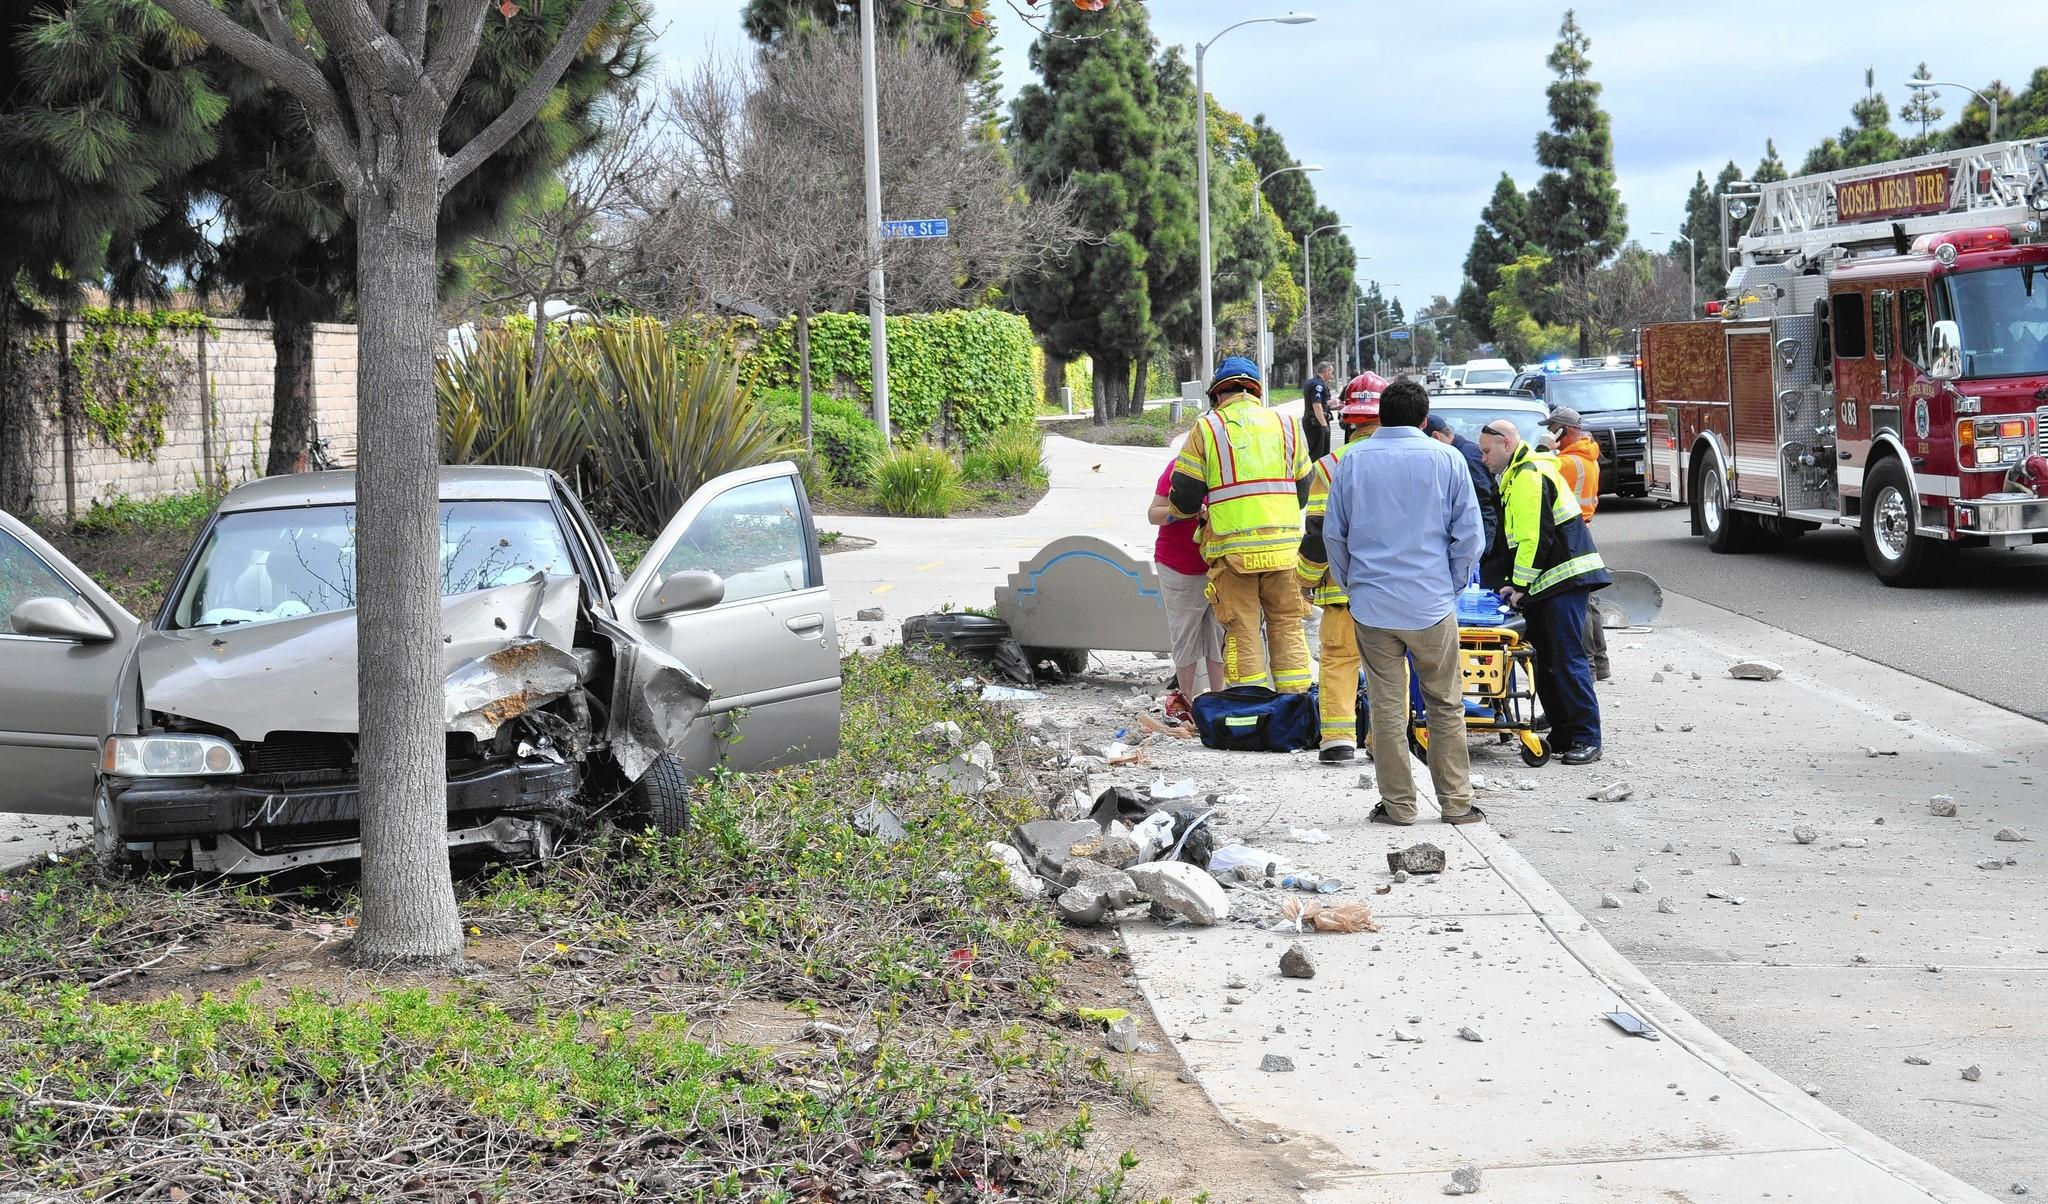 A Fountain Valley woman was taken to an area hospital Tuesday morning for minor injuries after crashing her car into a utility pole, concrete bench and trash can along Victoria Street near American Avenue.